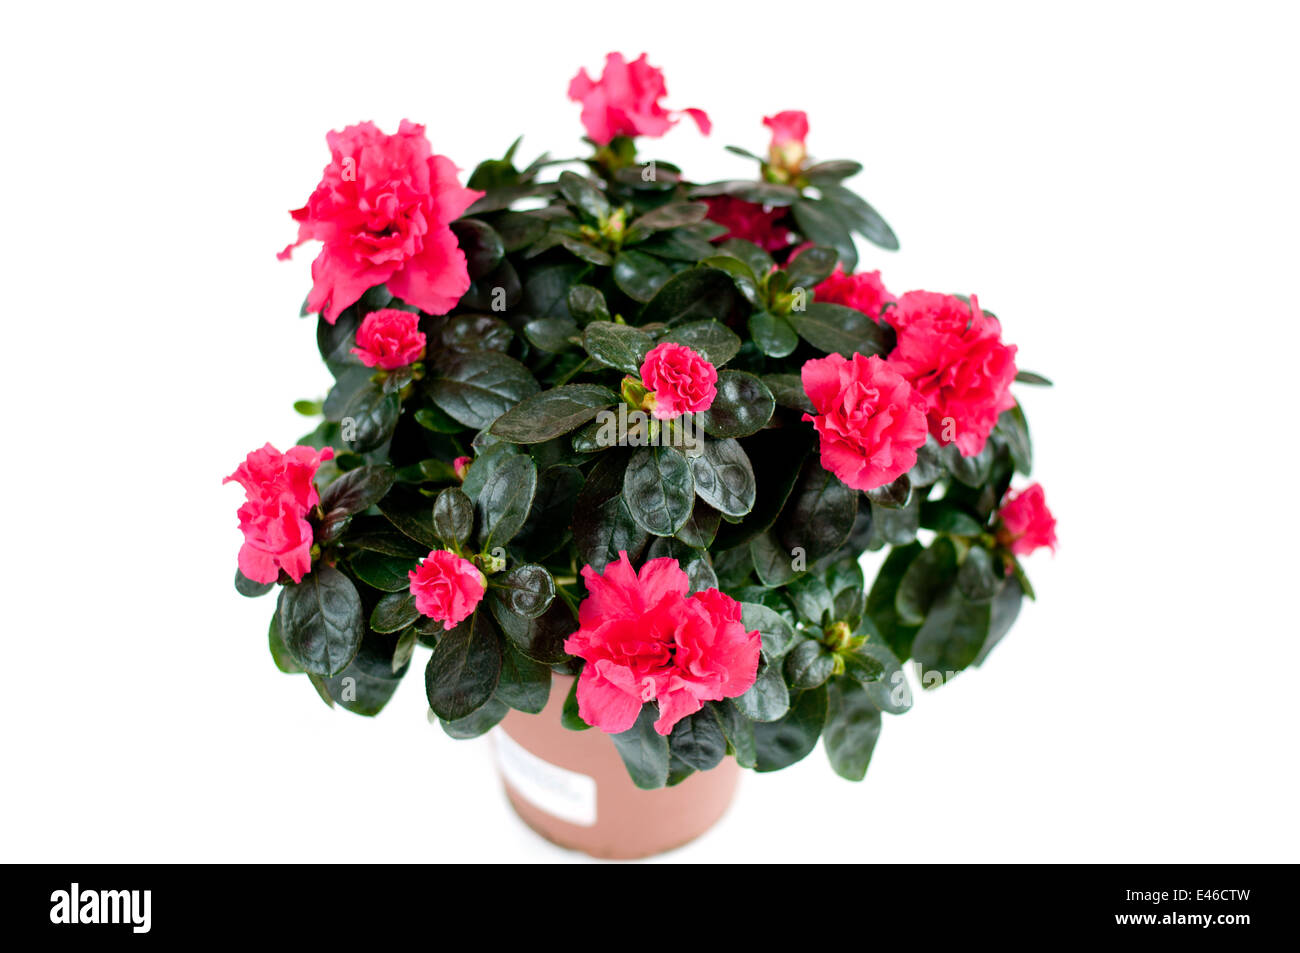 Azalea Pot Stock Photos Azalea Pot Stock Images Alamy